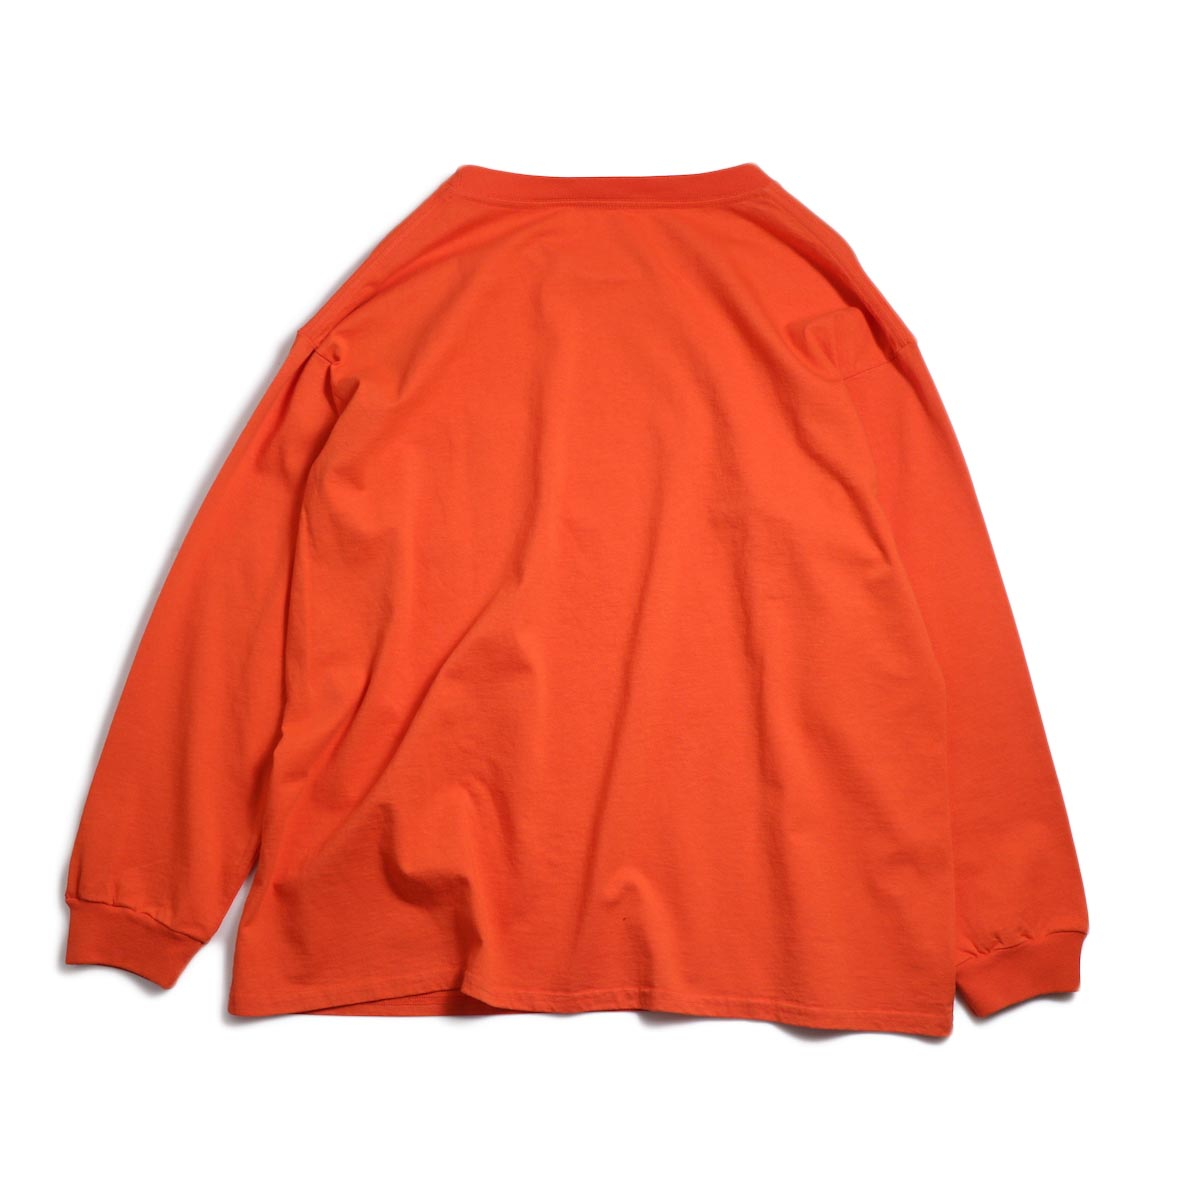 UNIVERSAL PRODUCTS / Heavy Weight L/S T-Shirt -Orange 背面